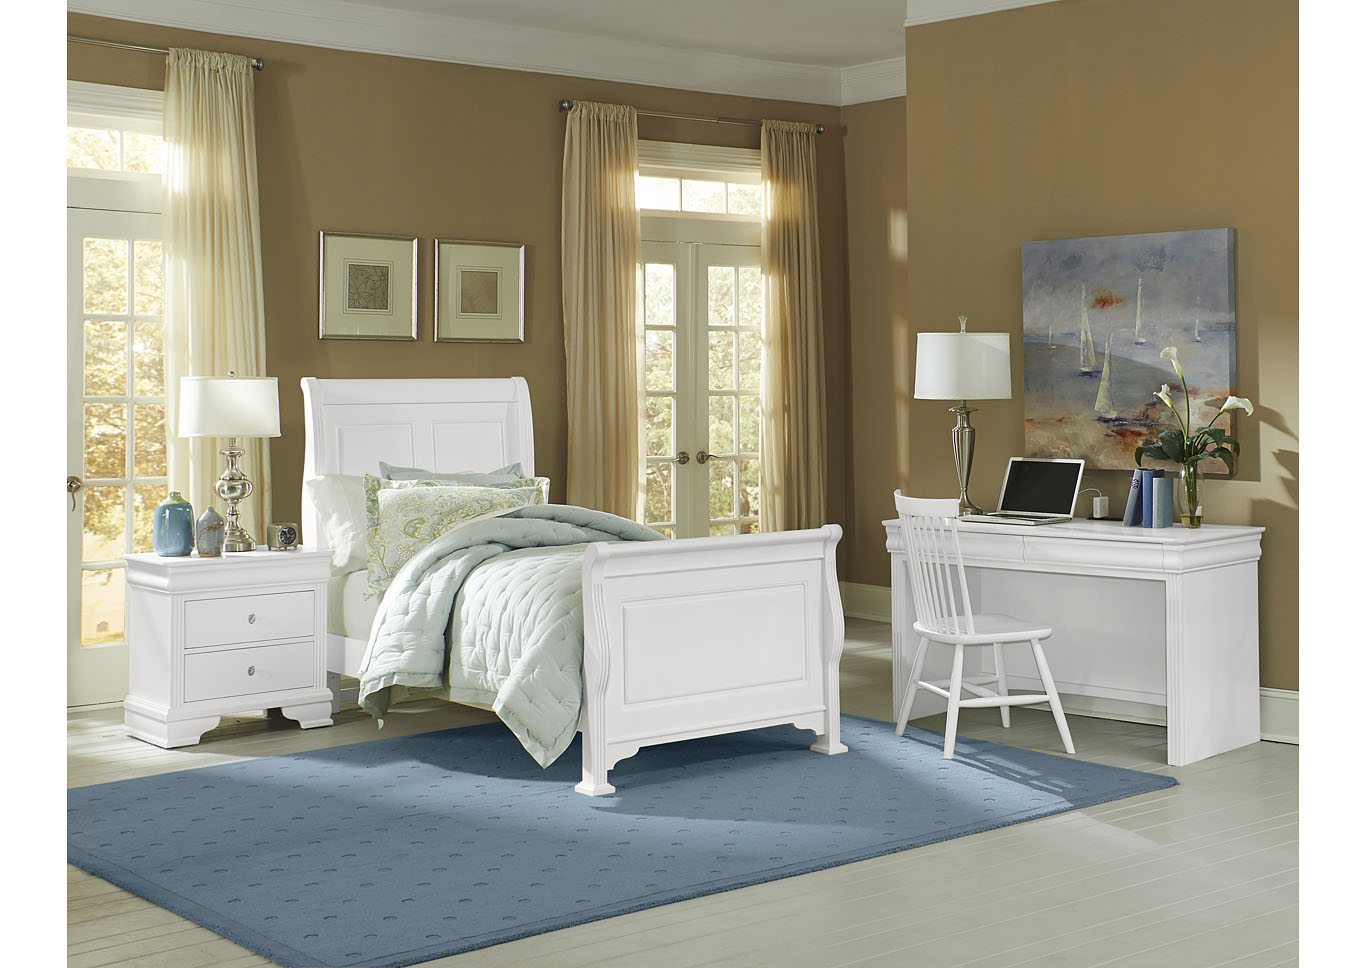 French Market Soft White Full Poster Bed w/ Desk, Chair and Nightstand,Vaughan-Bassett